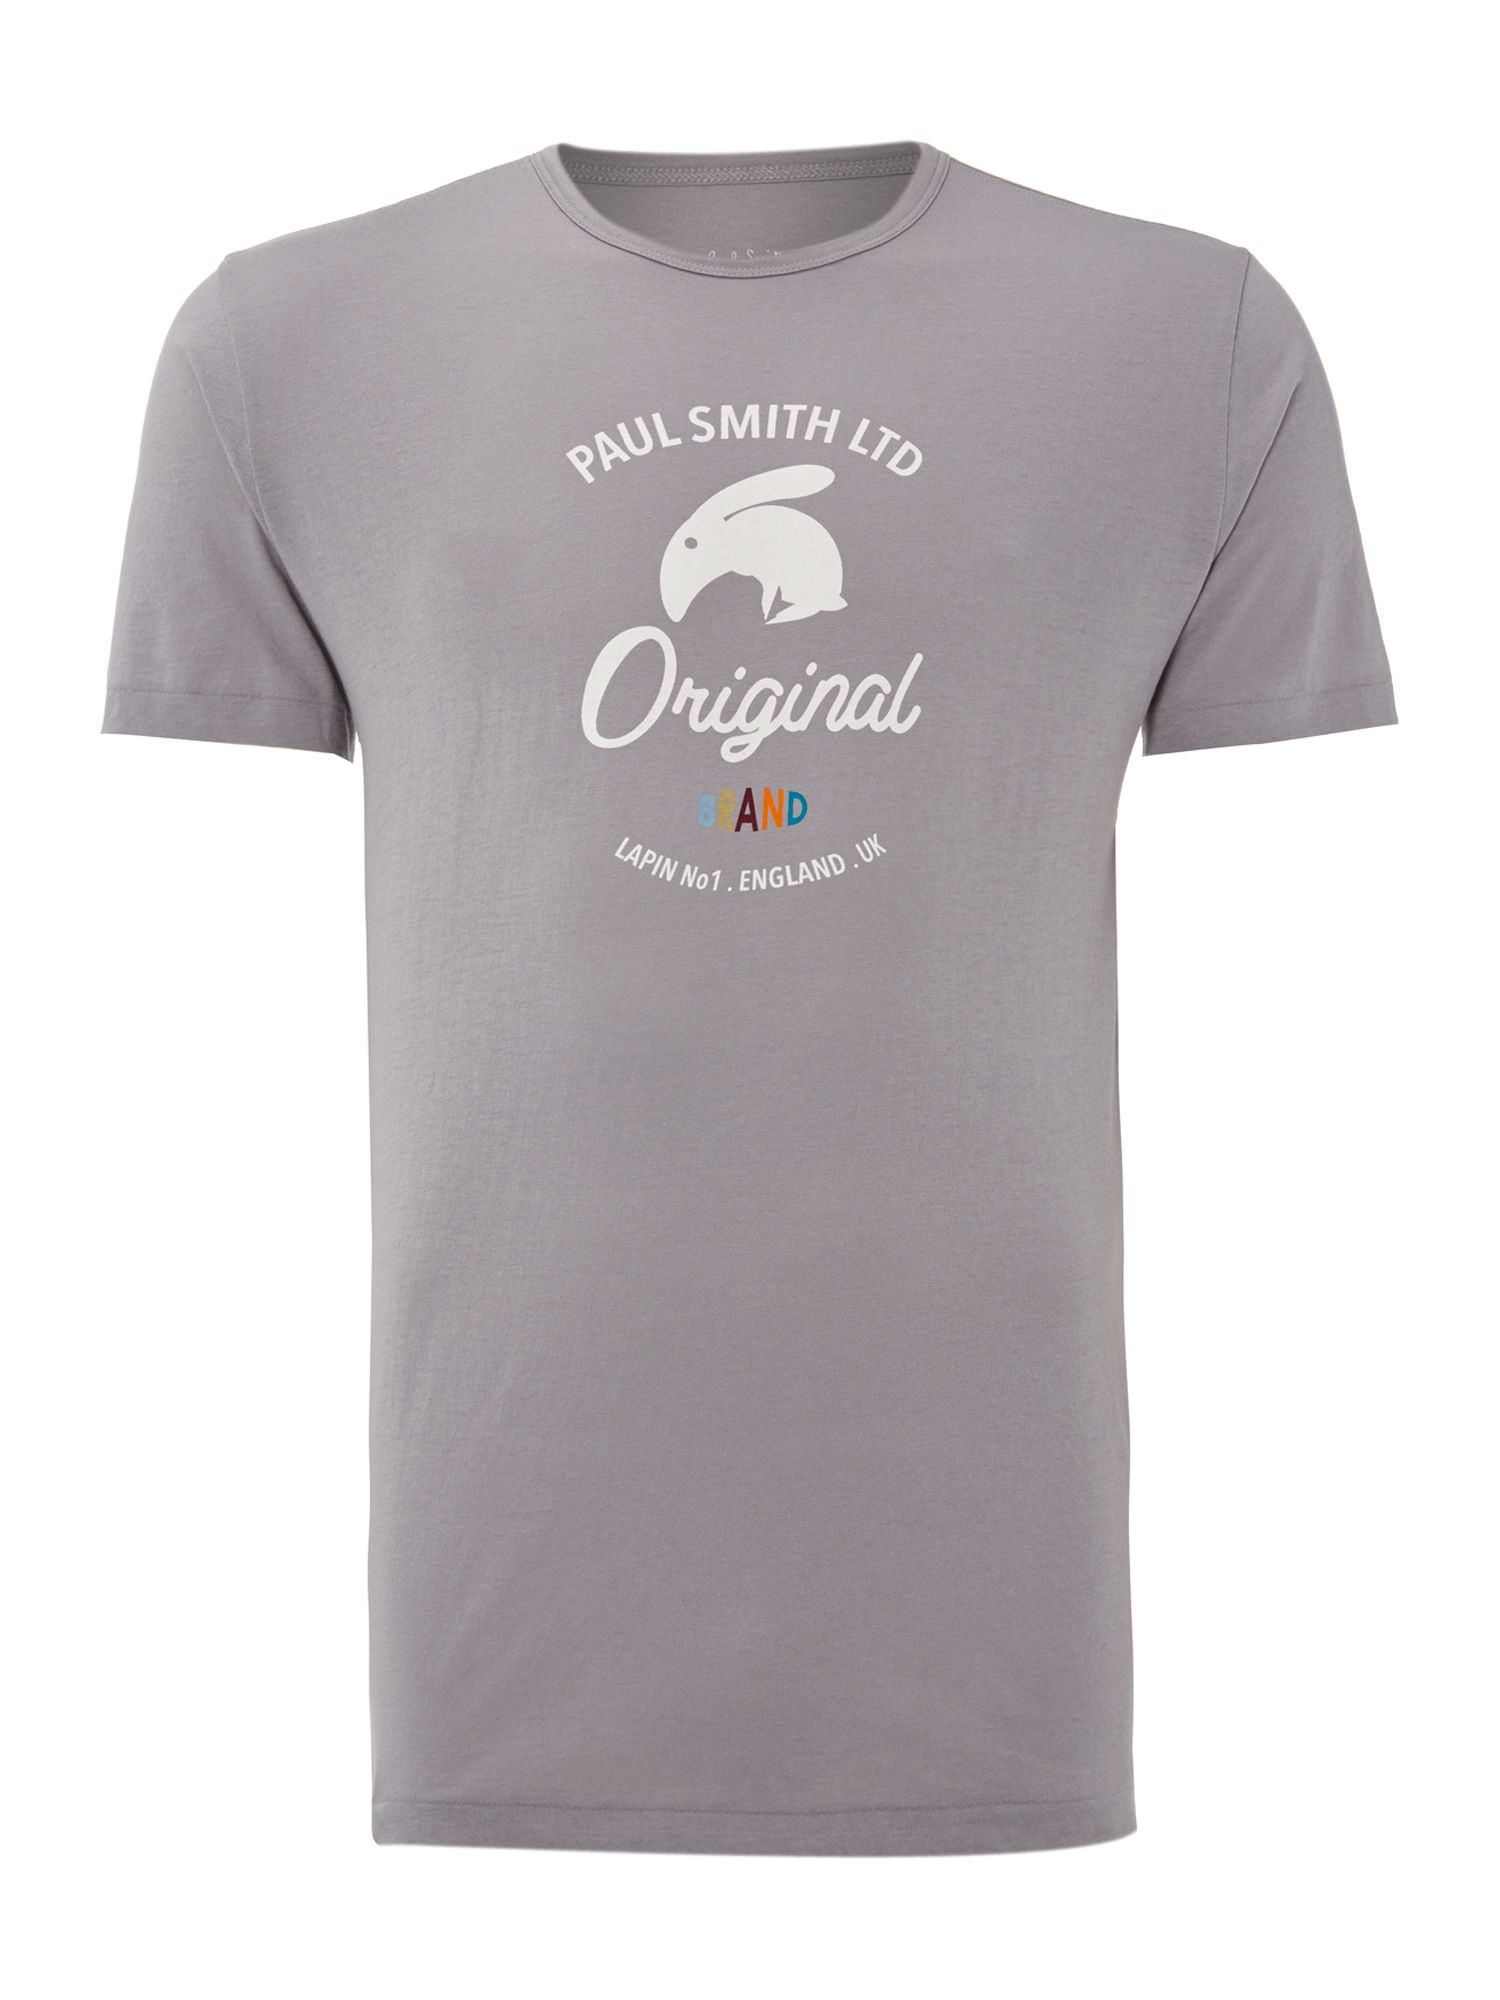 Paul Smith ltd logo t-shirt